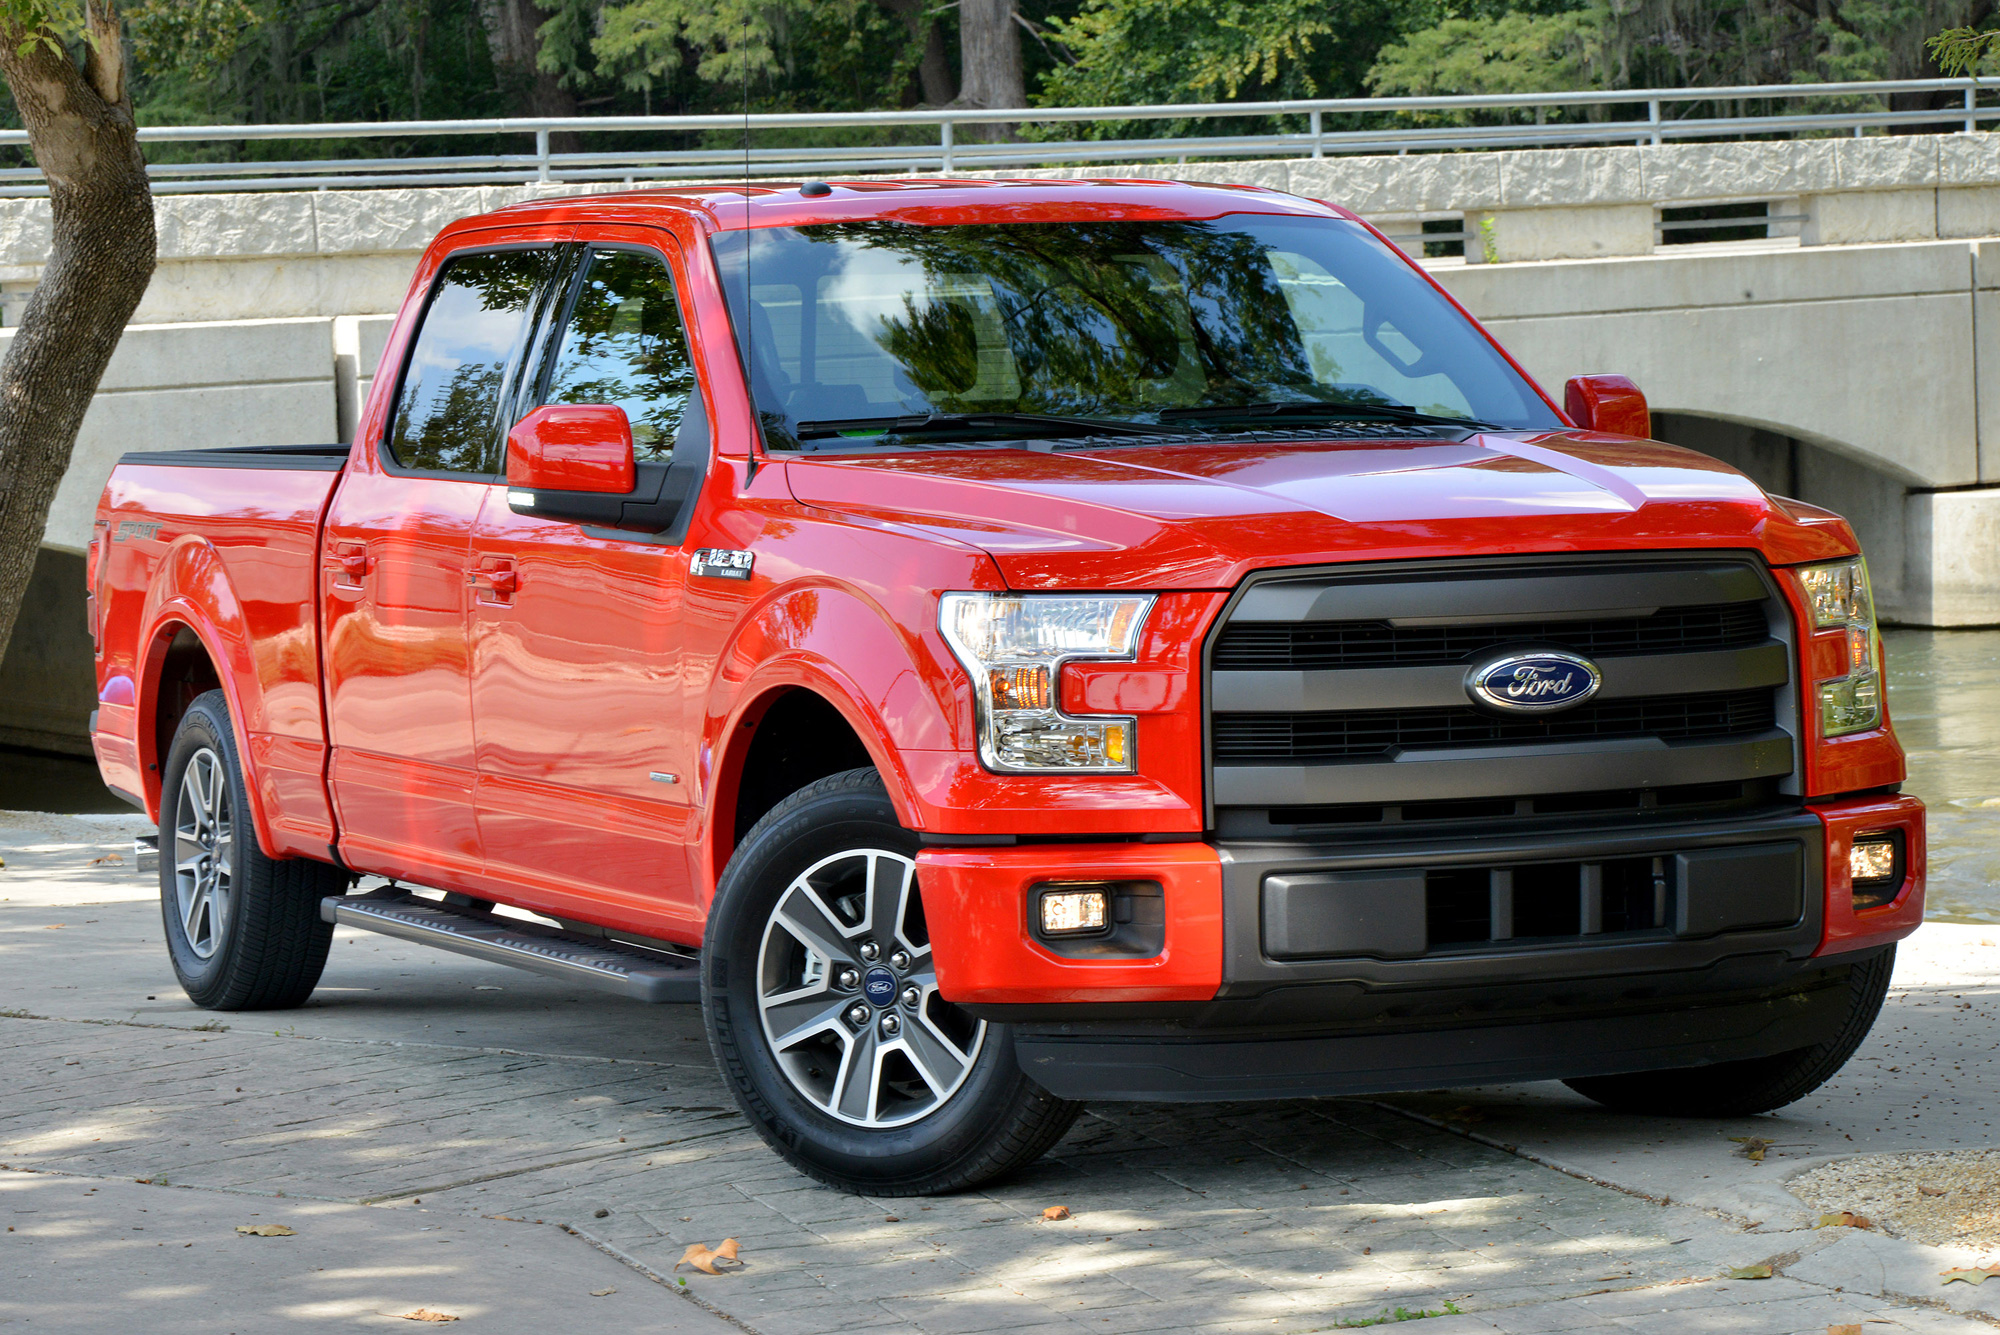 Ford F 150 Body Styles >> 2015 Ford F 150 Safety Ratings Five Stars For Every Body Style